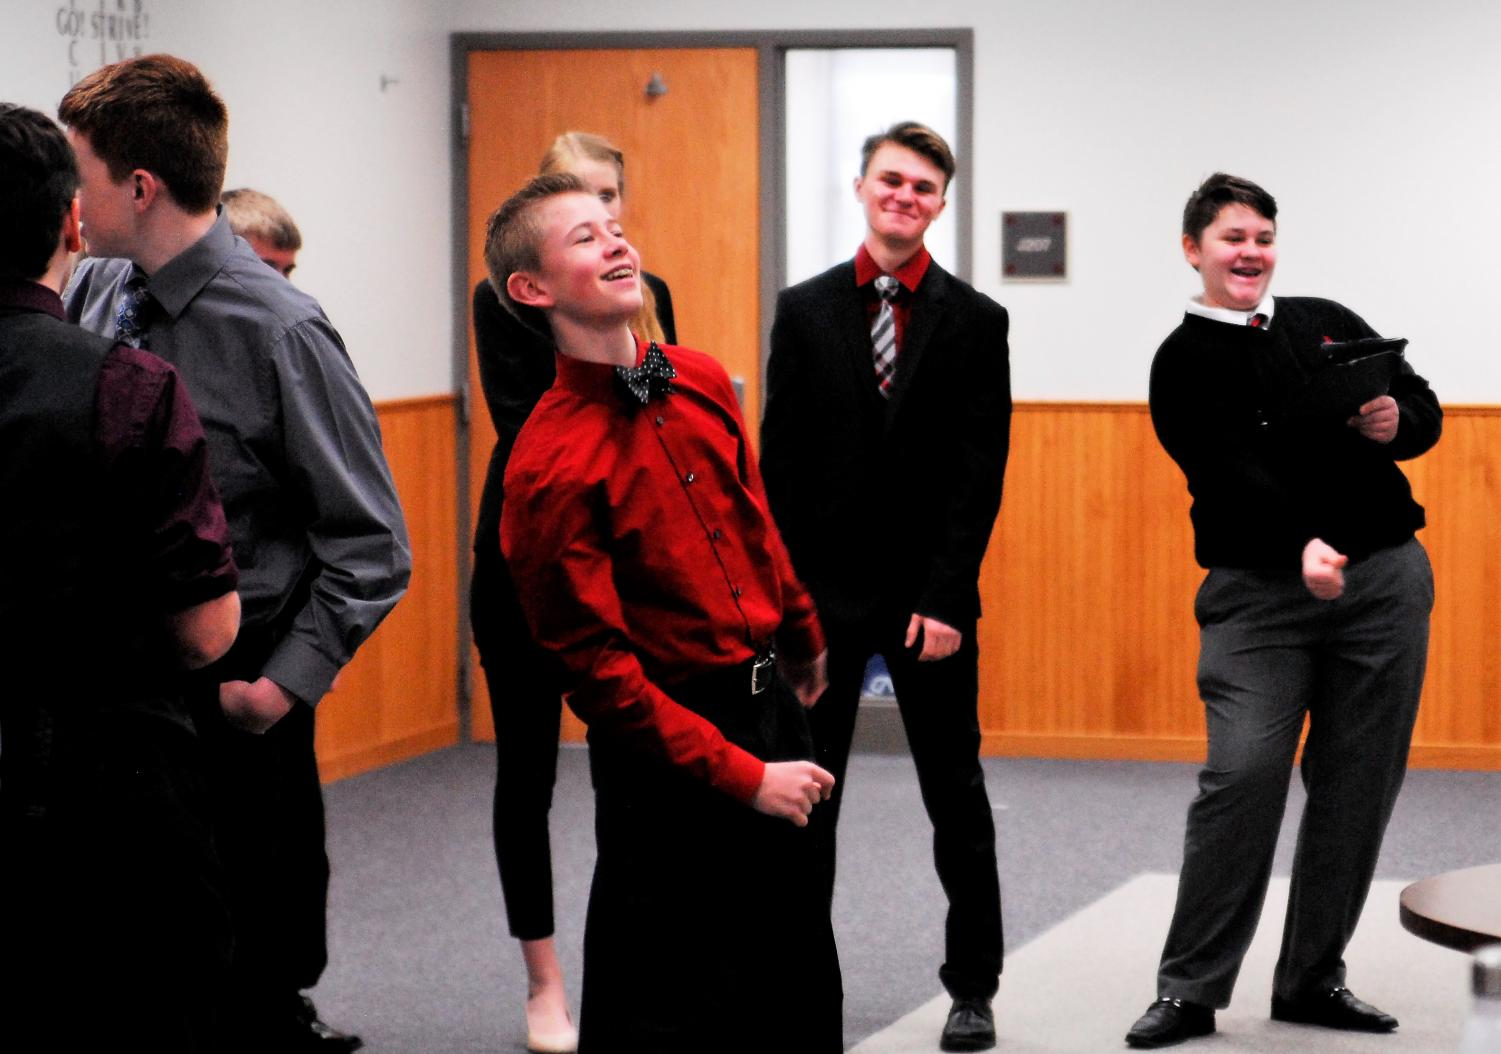 Sophomore, Ryan Schlichting, participates in warm ups with the team before a speech tournament.